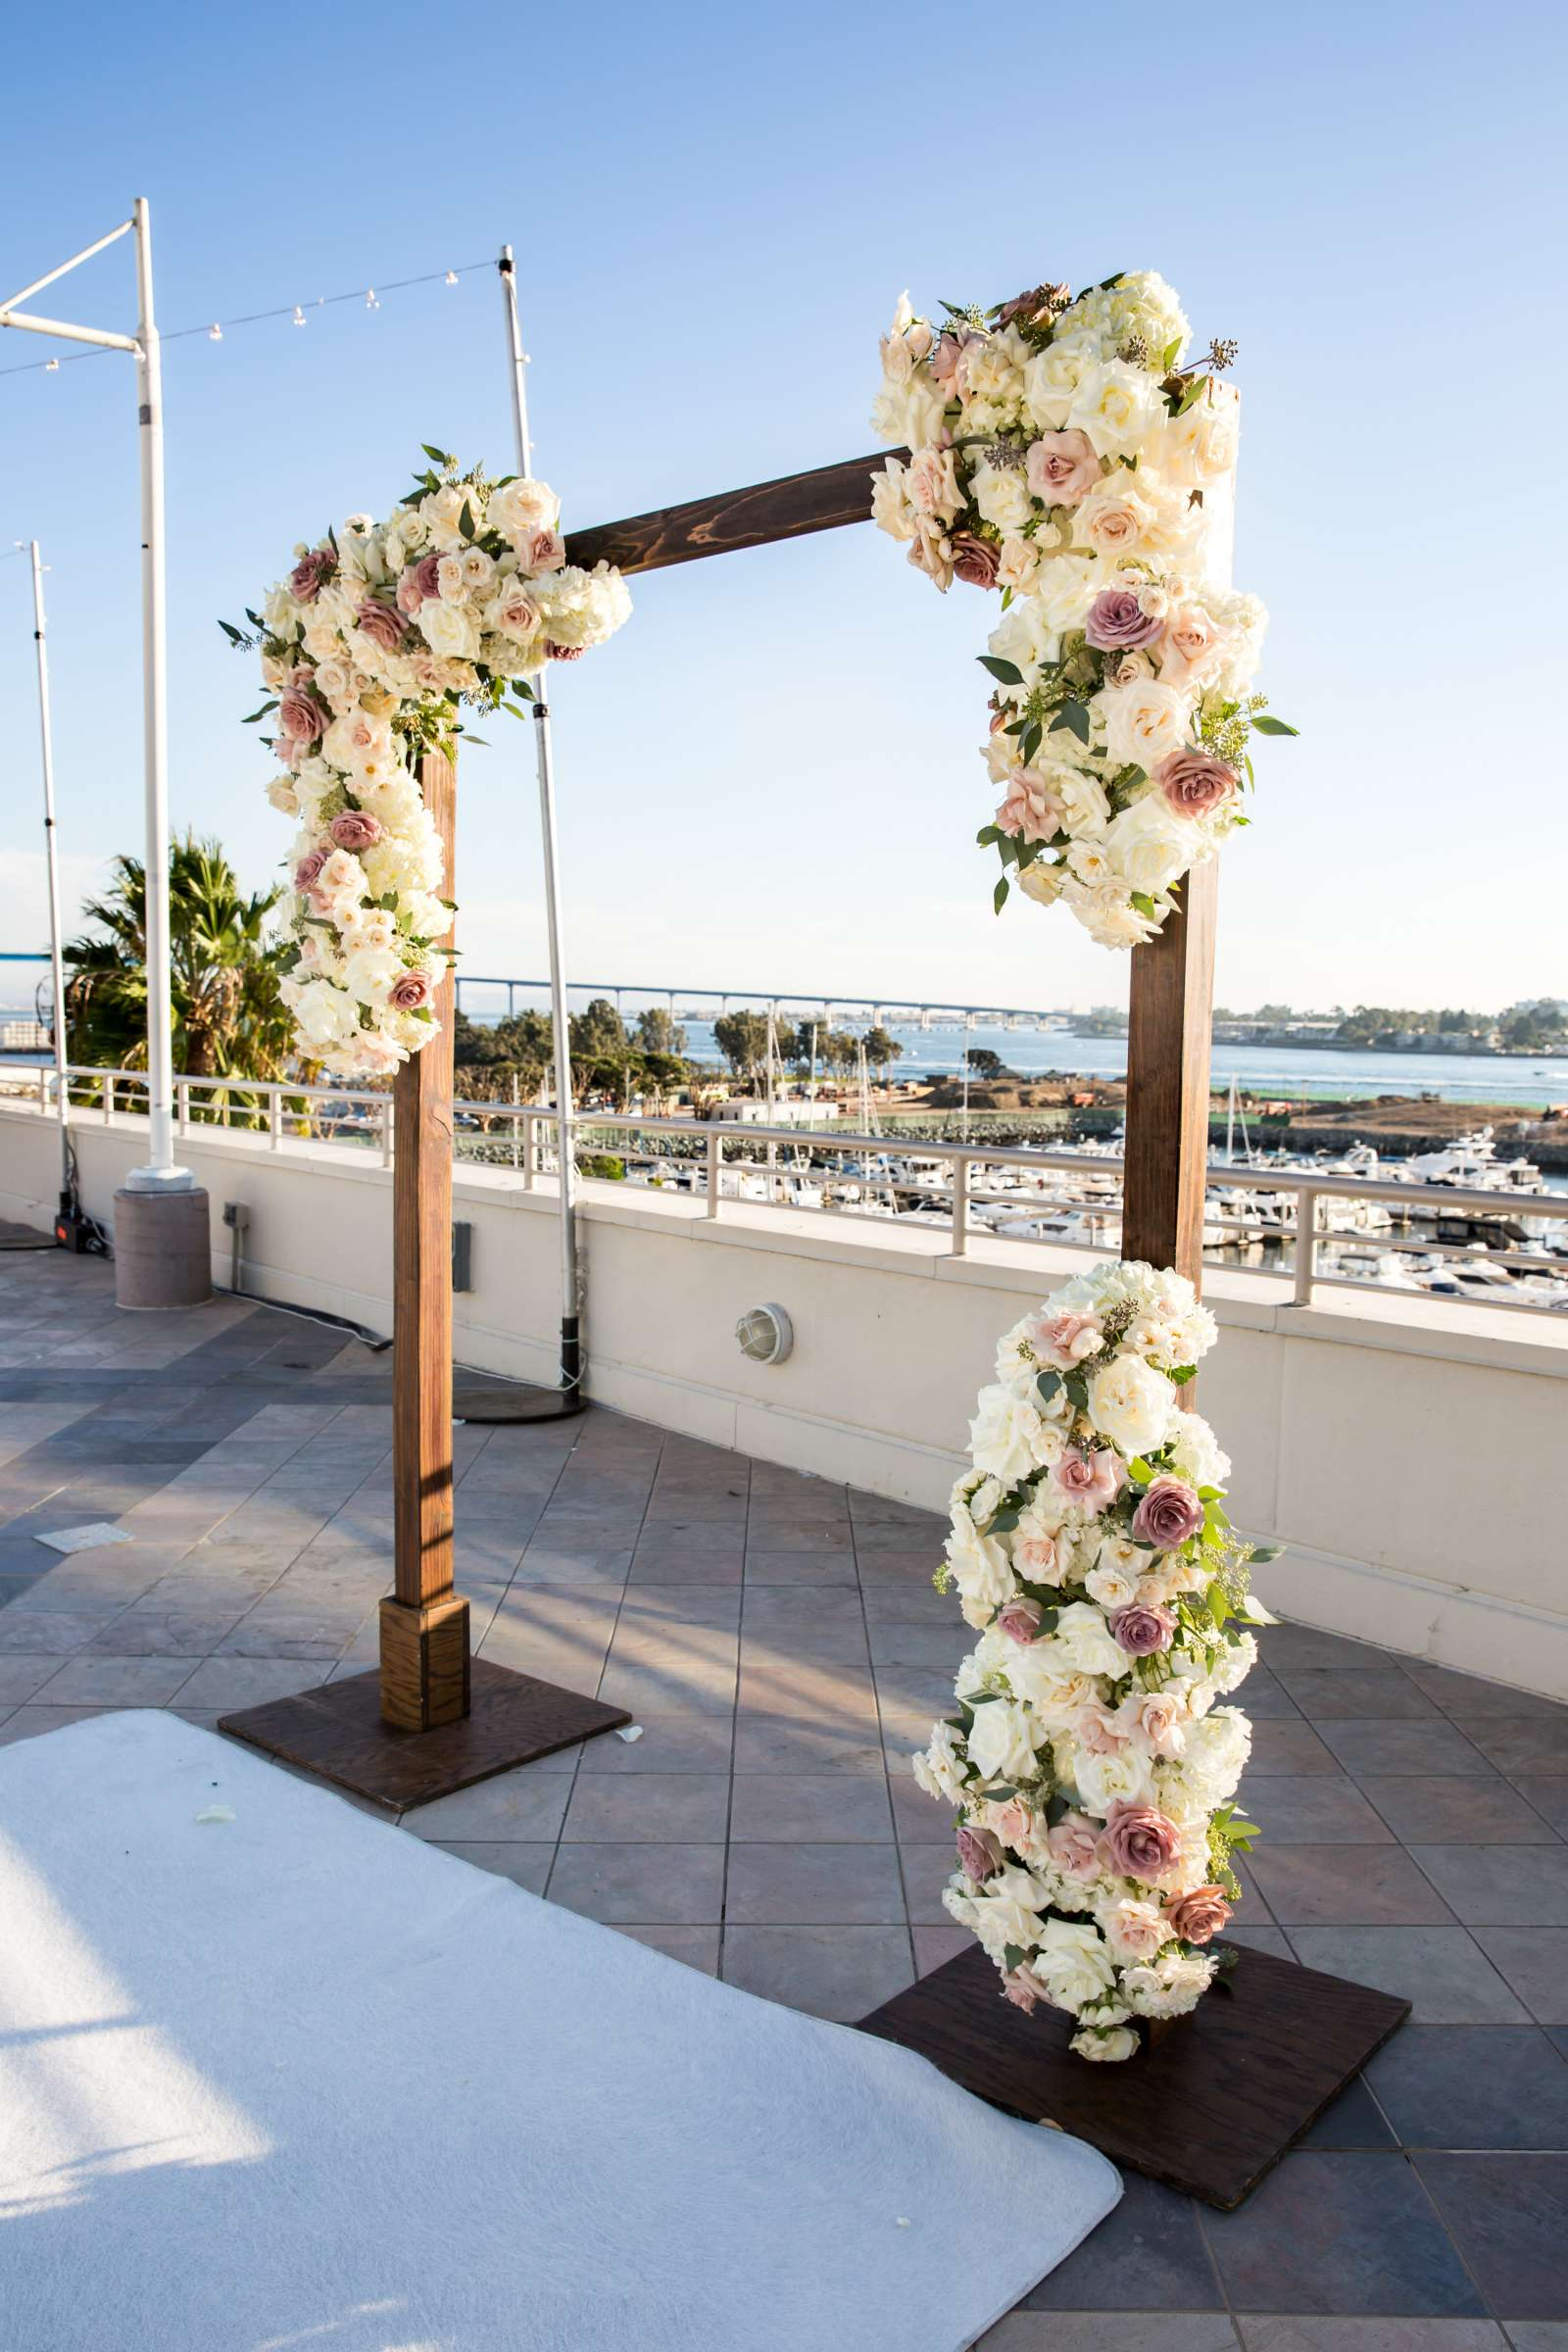 Marriott Marquis San Diego Marina Wedding coordinated by First Comes Love Weddings & Events, Ashlee and John Wedding Photo #134 by True Photography